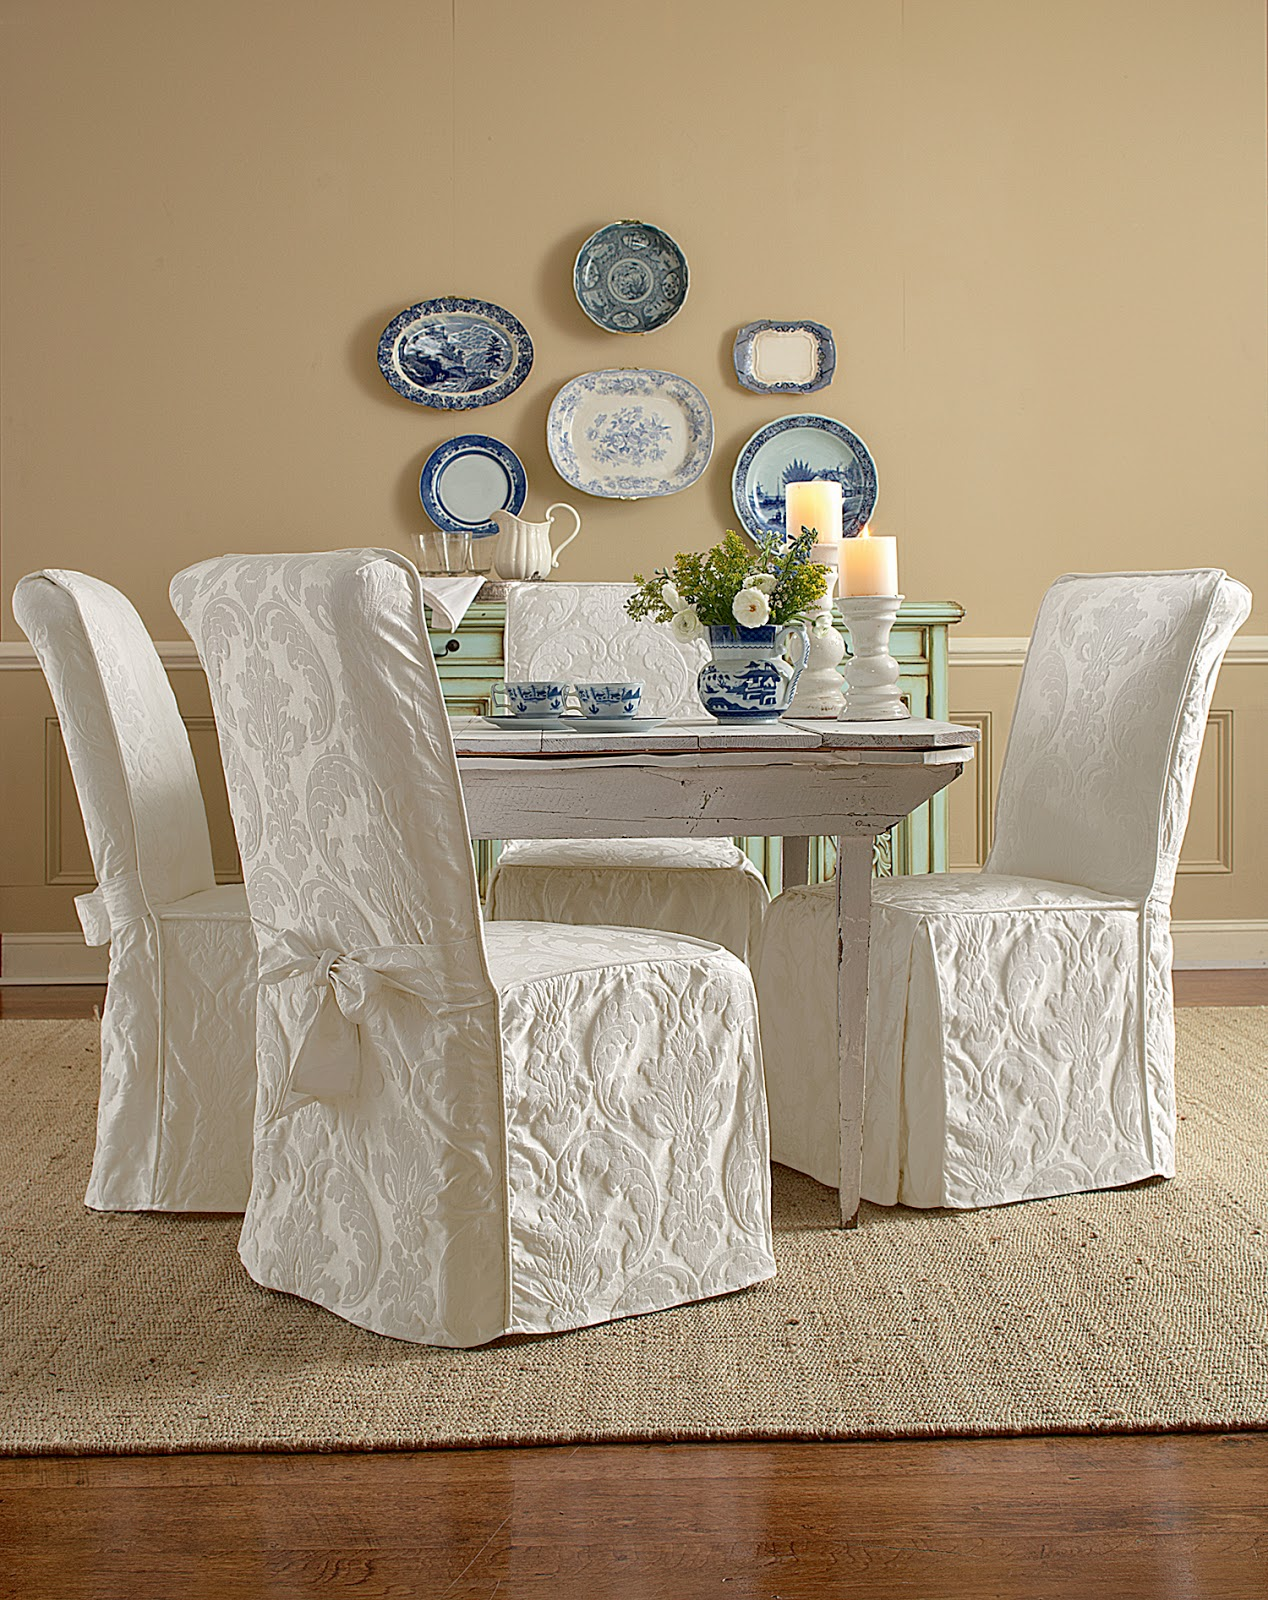 http://surefitslipcovers.blogspot.com/2014/03/super-easy-way-to-pretty-up-those.html